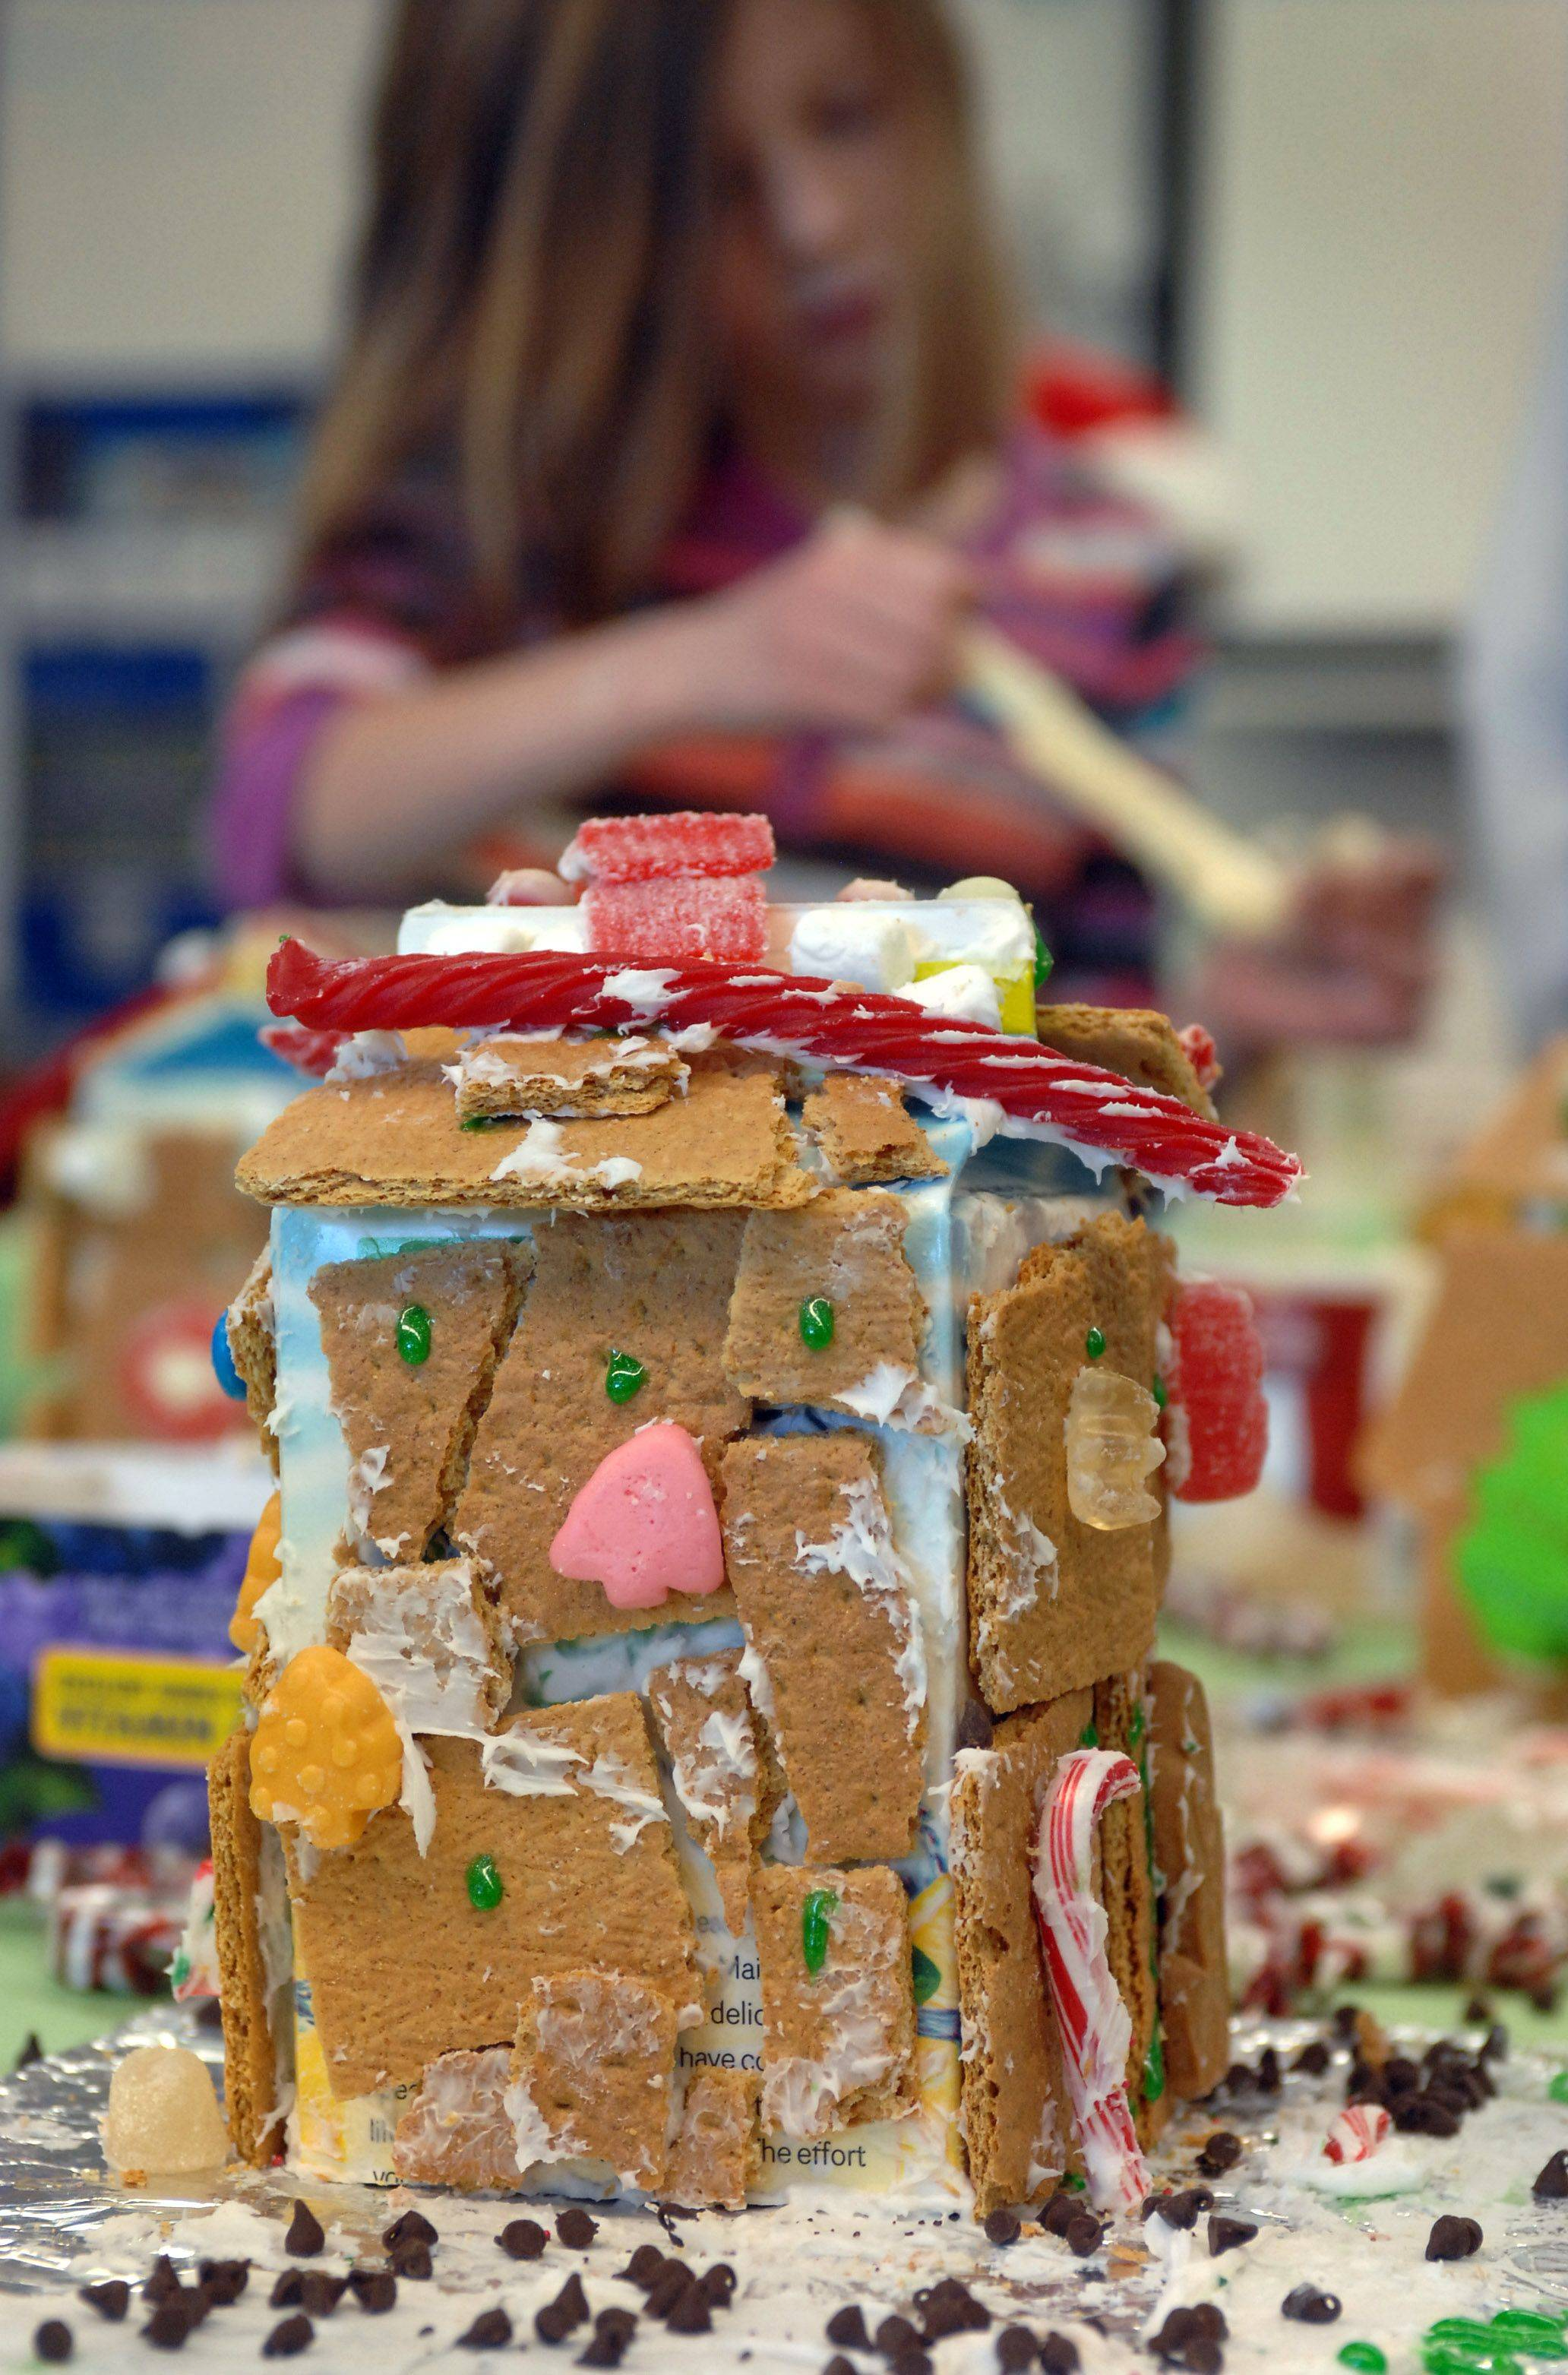 Brielle Rochester's gingerbread house comes together Friday at Adler Park School in Libertyville.